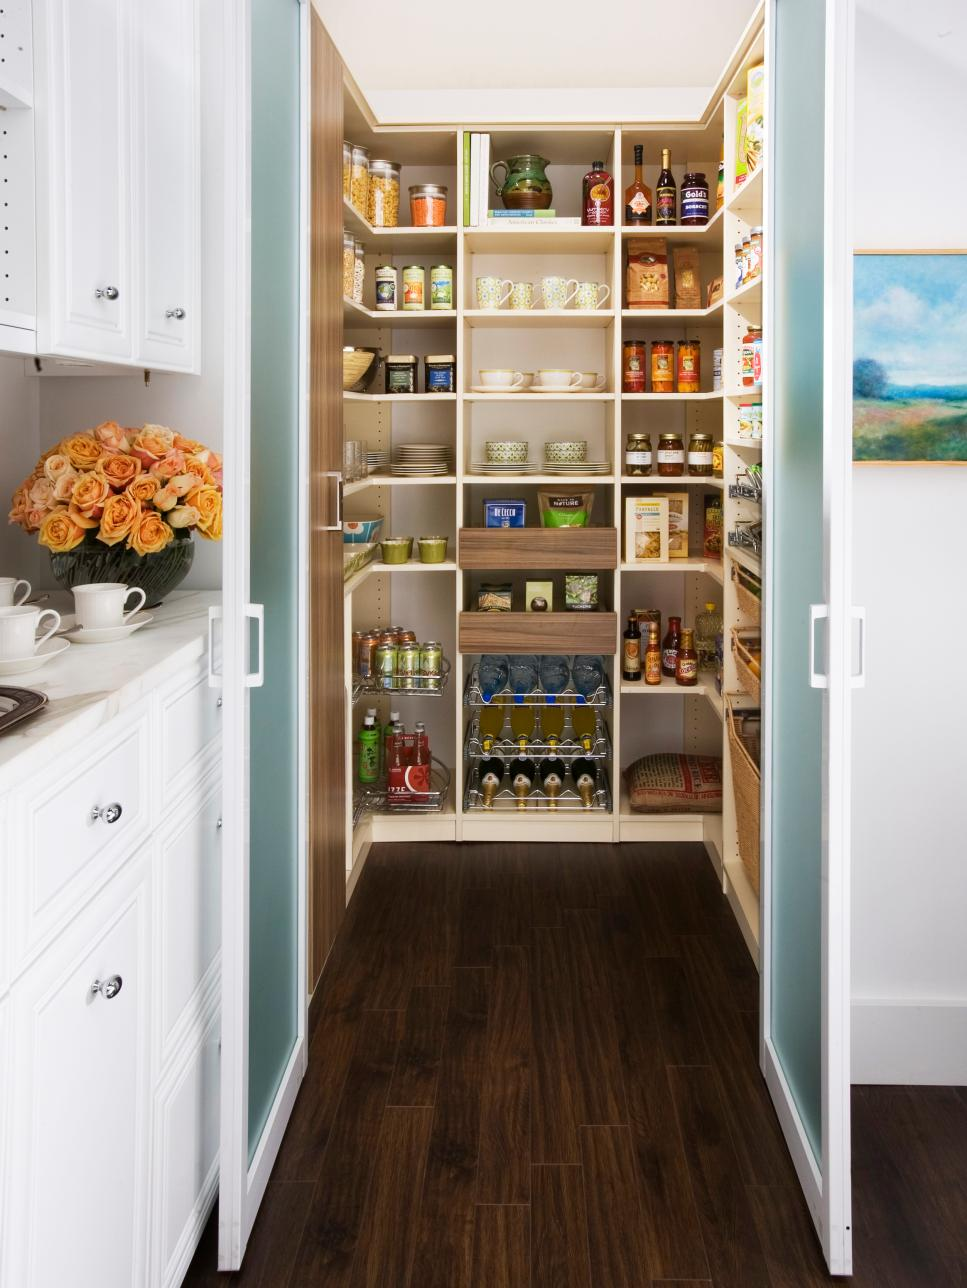 Kitchen storage ideas hgtv Store room design ideas